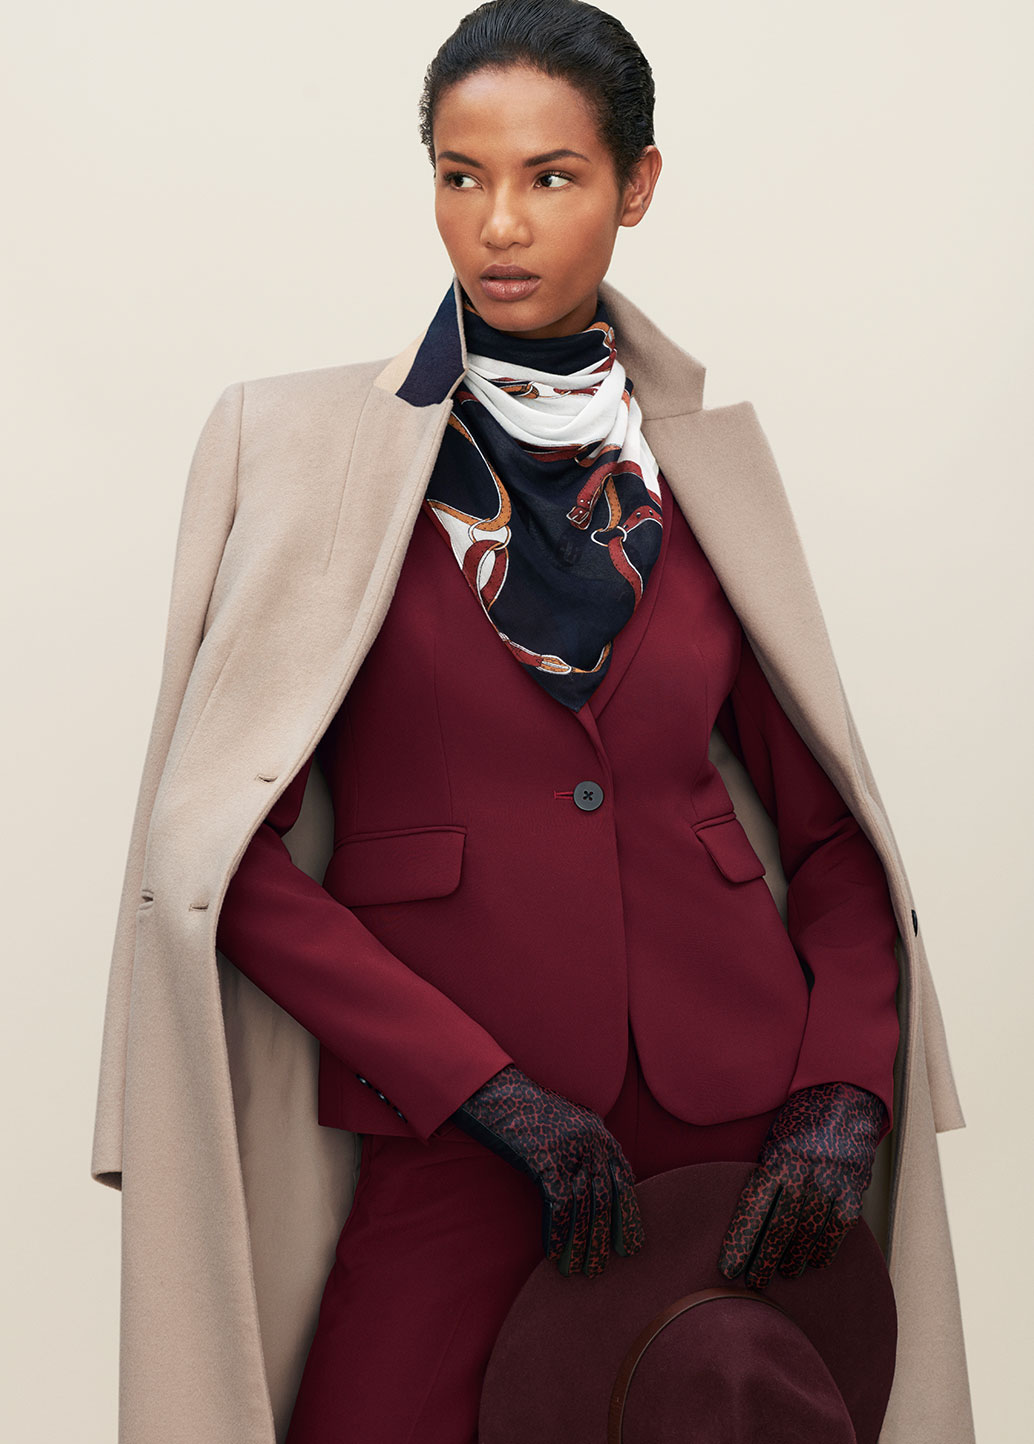 Hobbs London Women's Fashion, Autumn Winter 2019